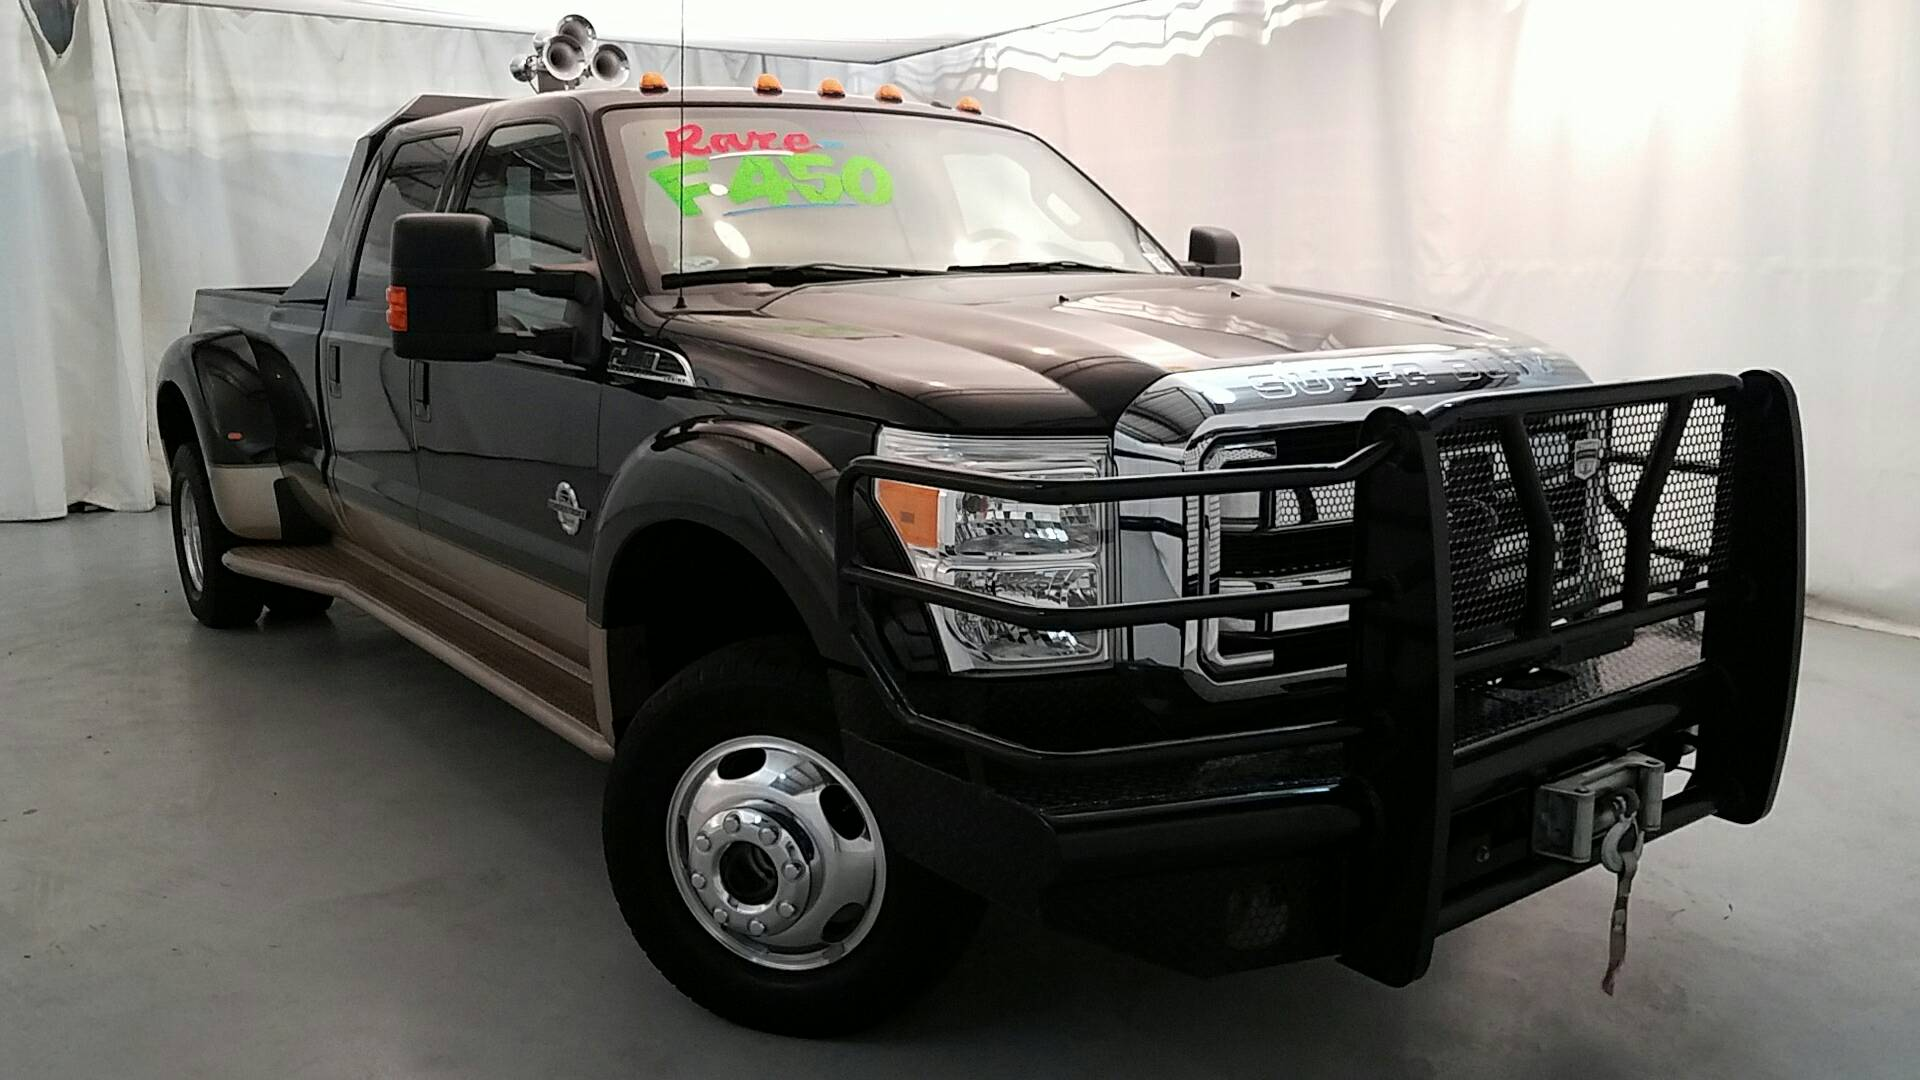 preowned vehicles for for hammond to drivers at ross downing 2012 ford super duty f 450 drw vehicle photo in hammond la 70403